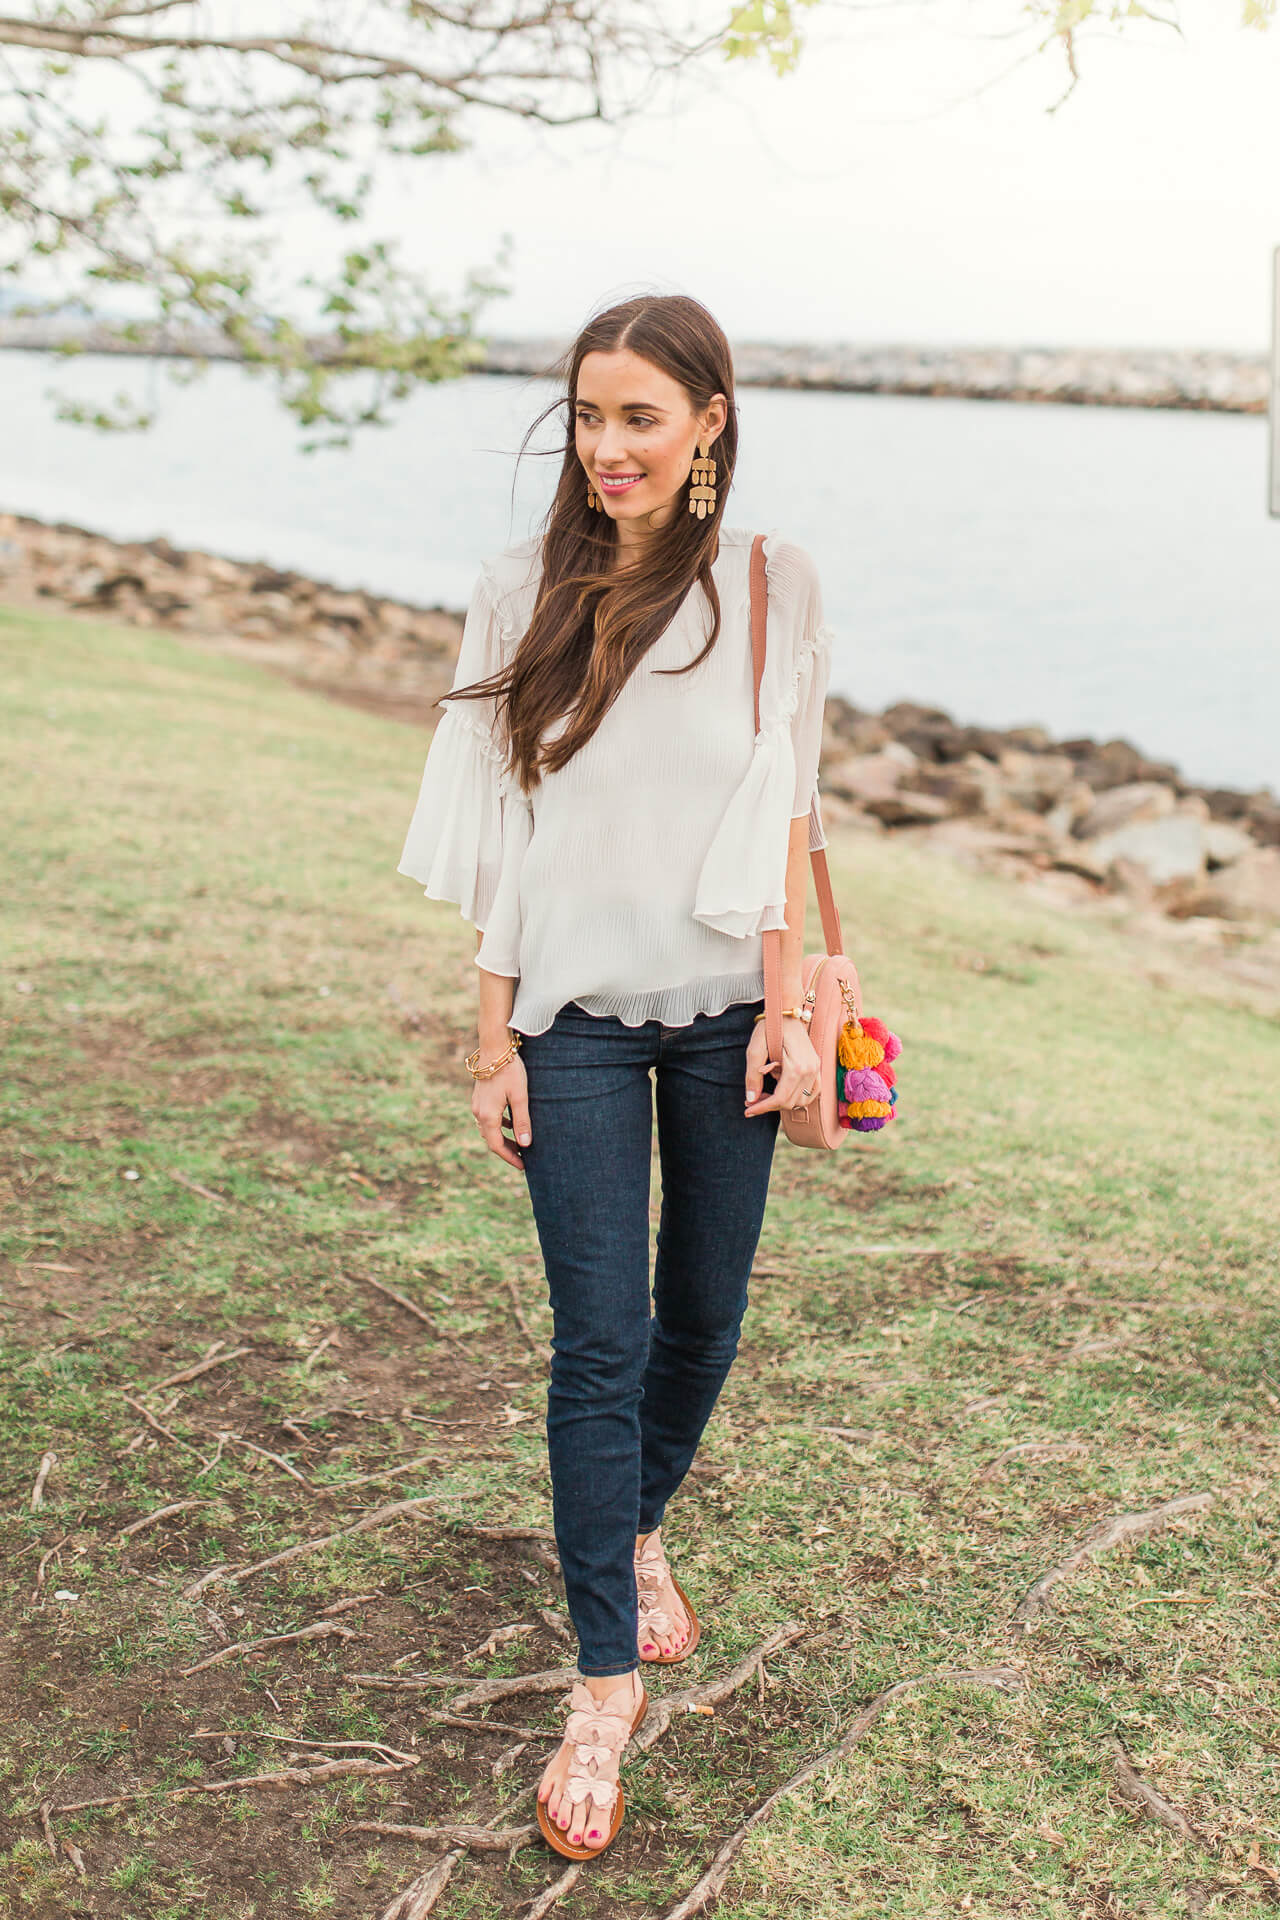 casual spring outfit inspiration with a pretty top to wear for work or play